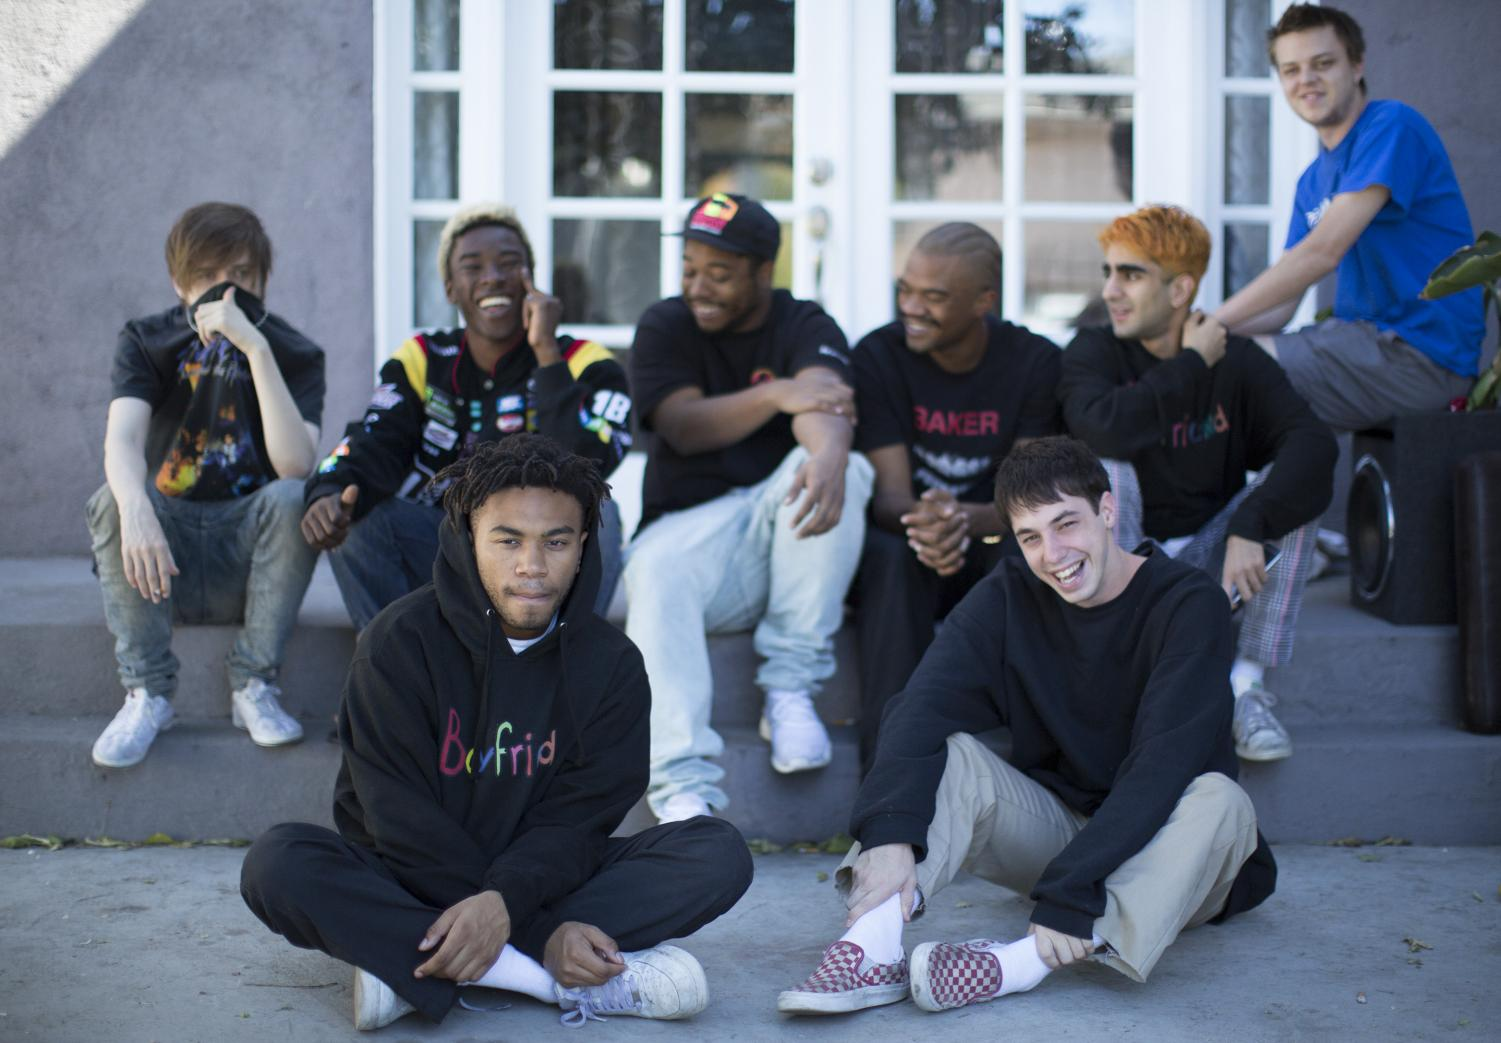 From their Internet roots, Brockhampton is emerging into the real world in a big way with their recently released album